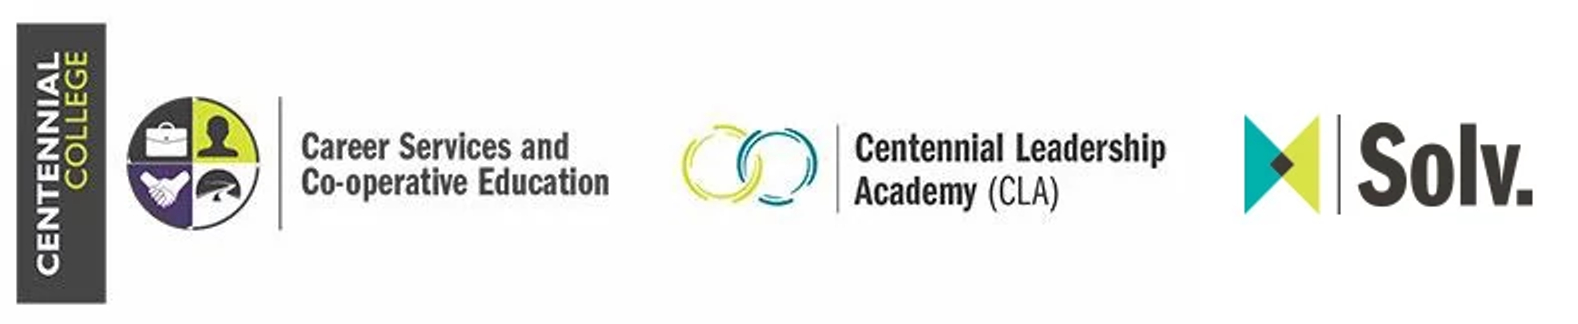 centennial college logo and wordmarks for career services and co-operative education, centennial leadership academy and solv